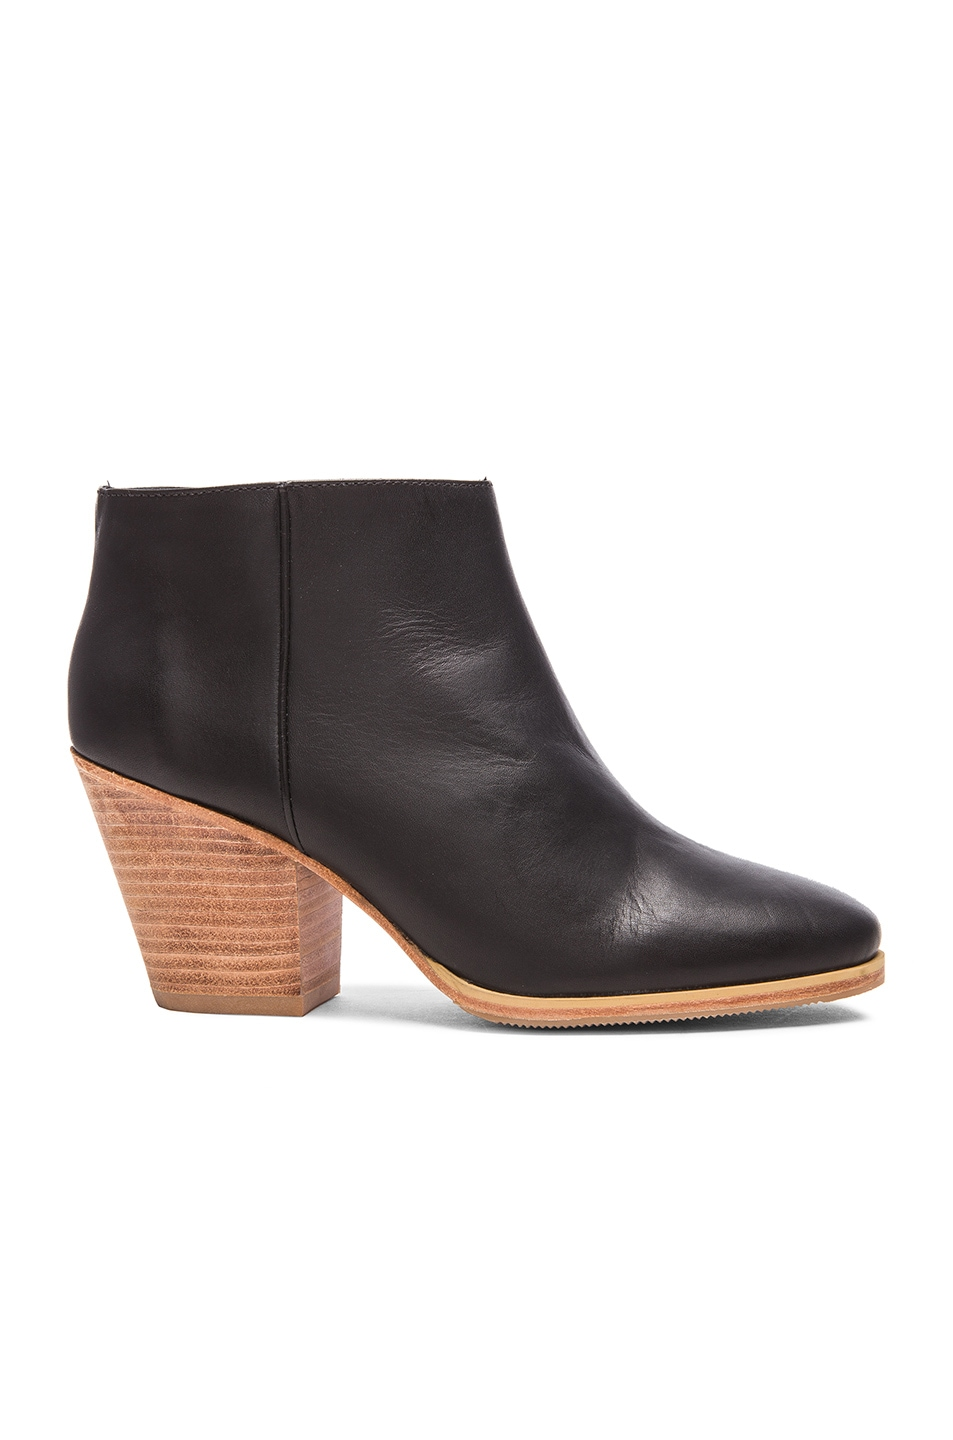 Image 1 of Rachel Comey Mars Leather Booties in Black & Natural